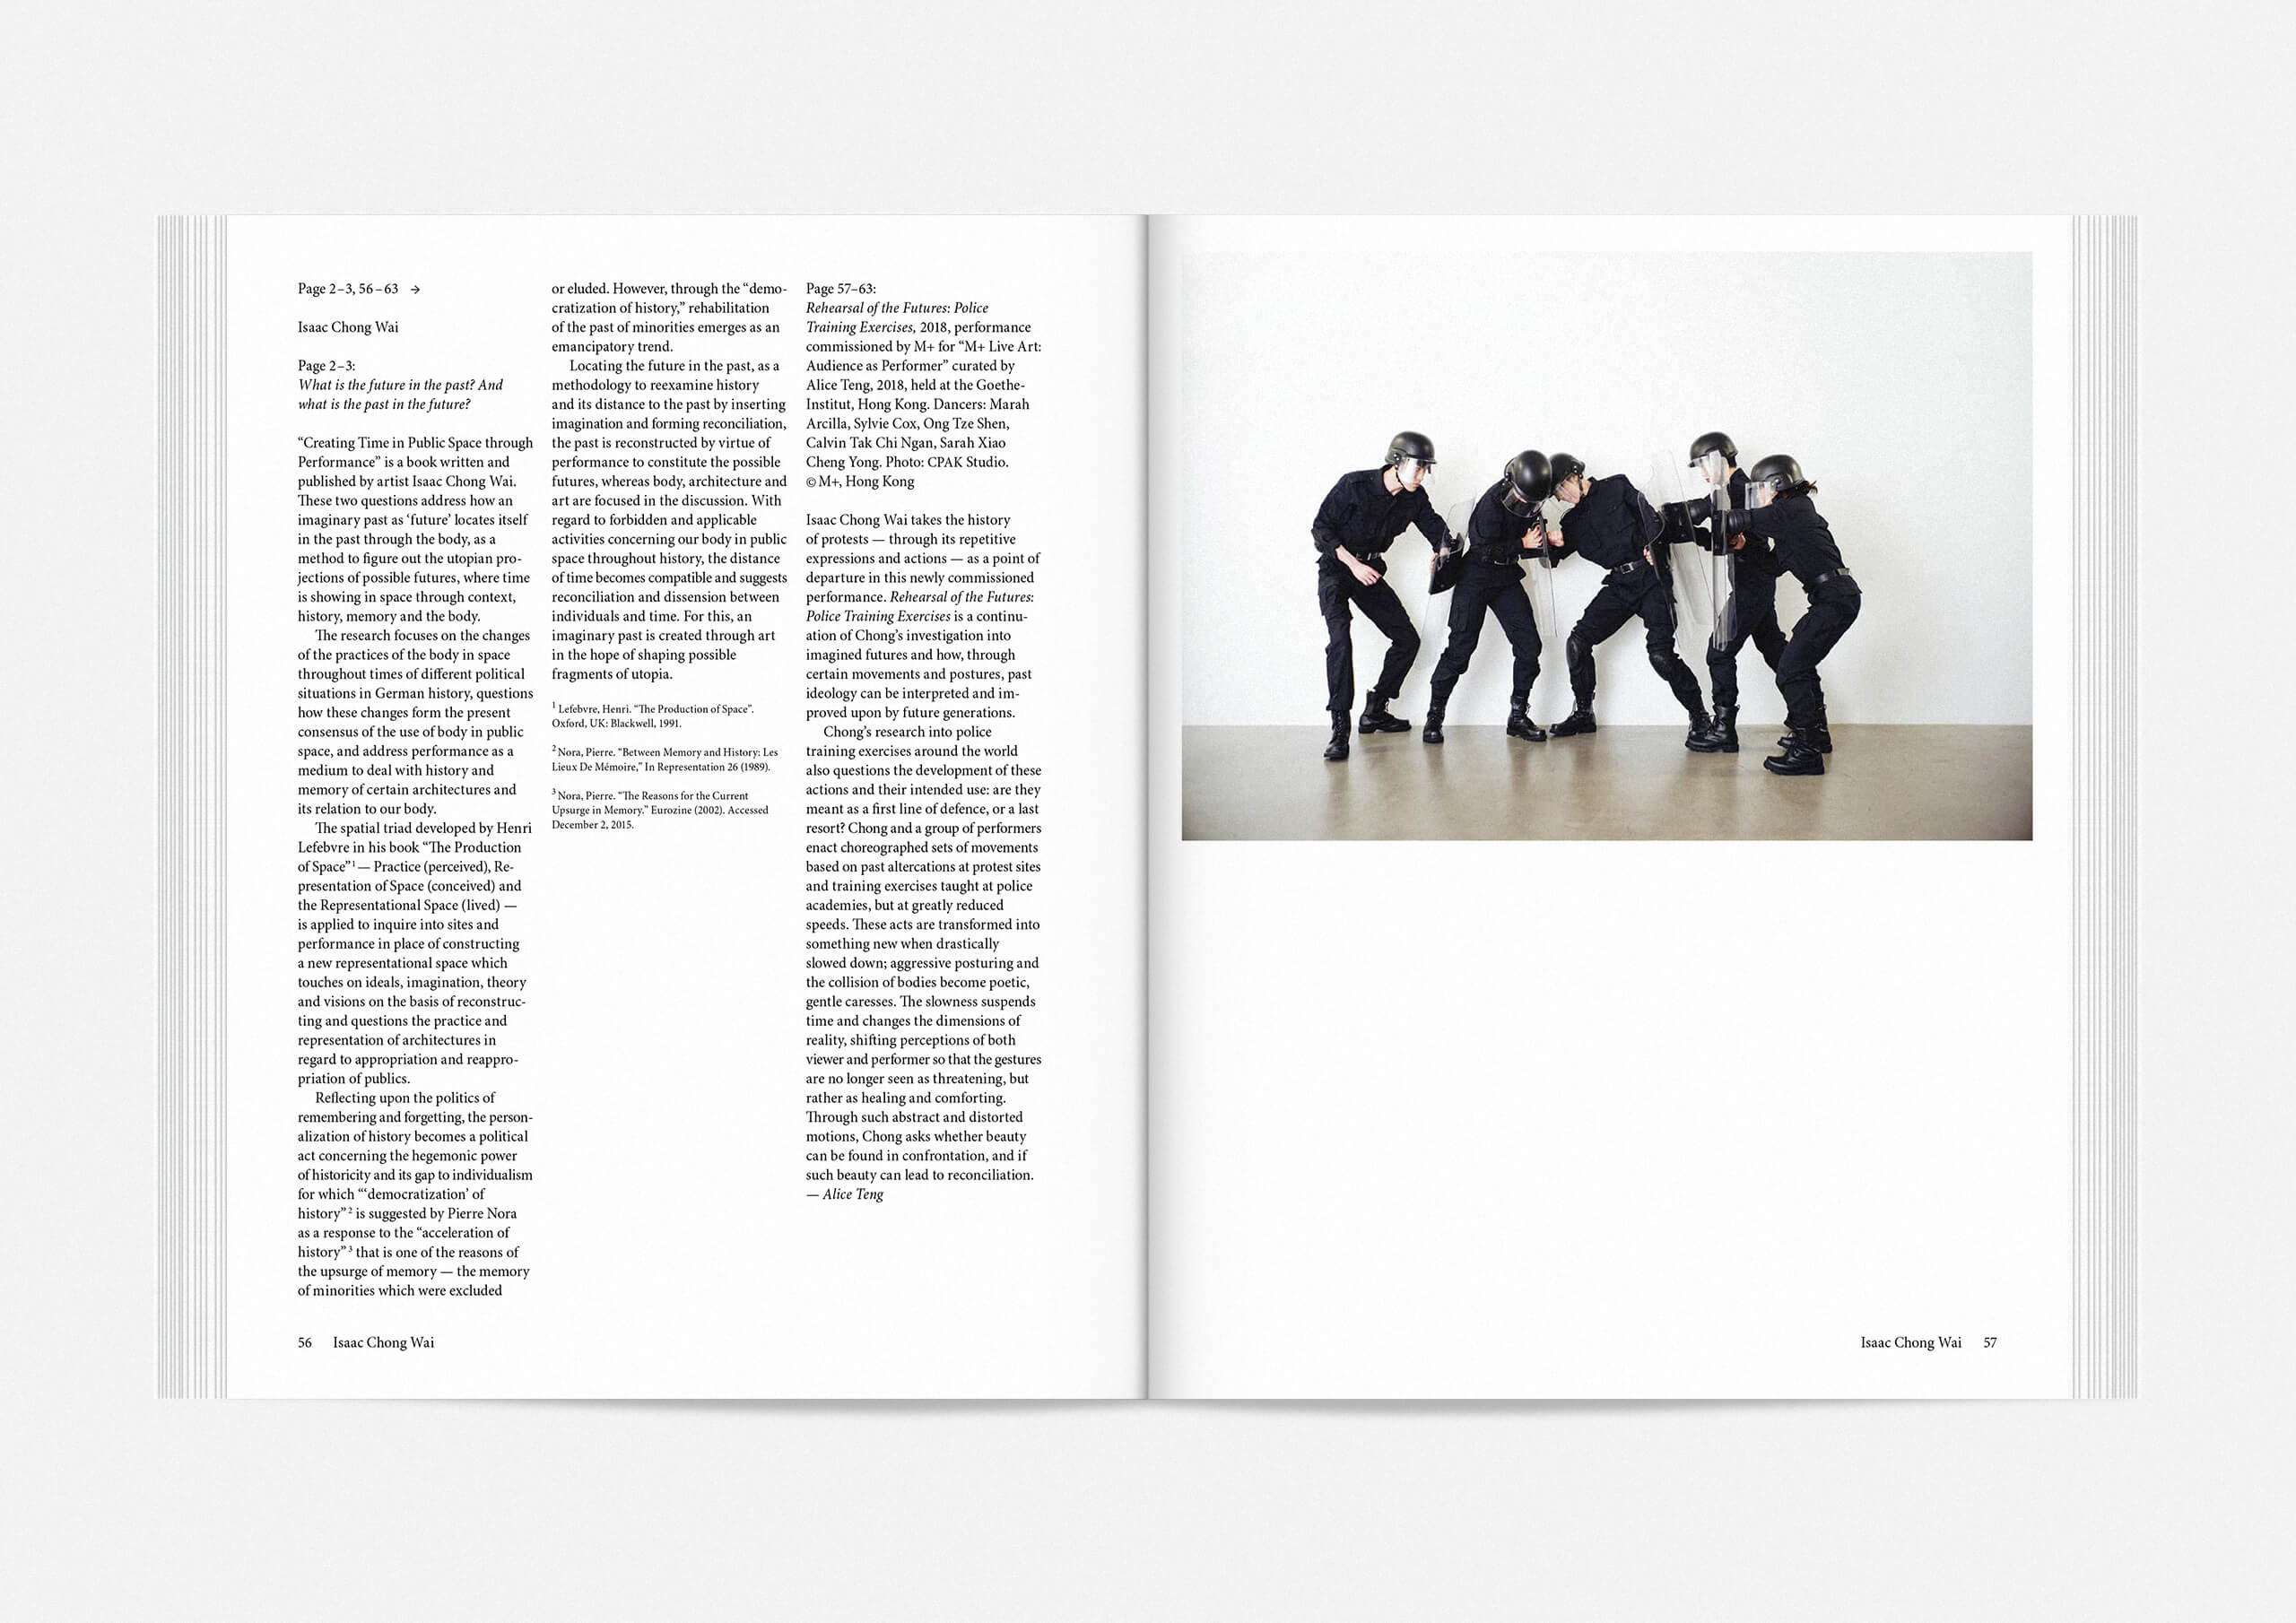 https://neuegestaltung.de/media/pages/clients/protocollum-issue-no-05/e09e875d0d-1597415141/protocollum-5-page-5657-ng.jpg